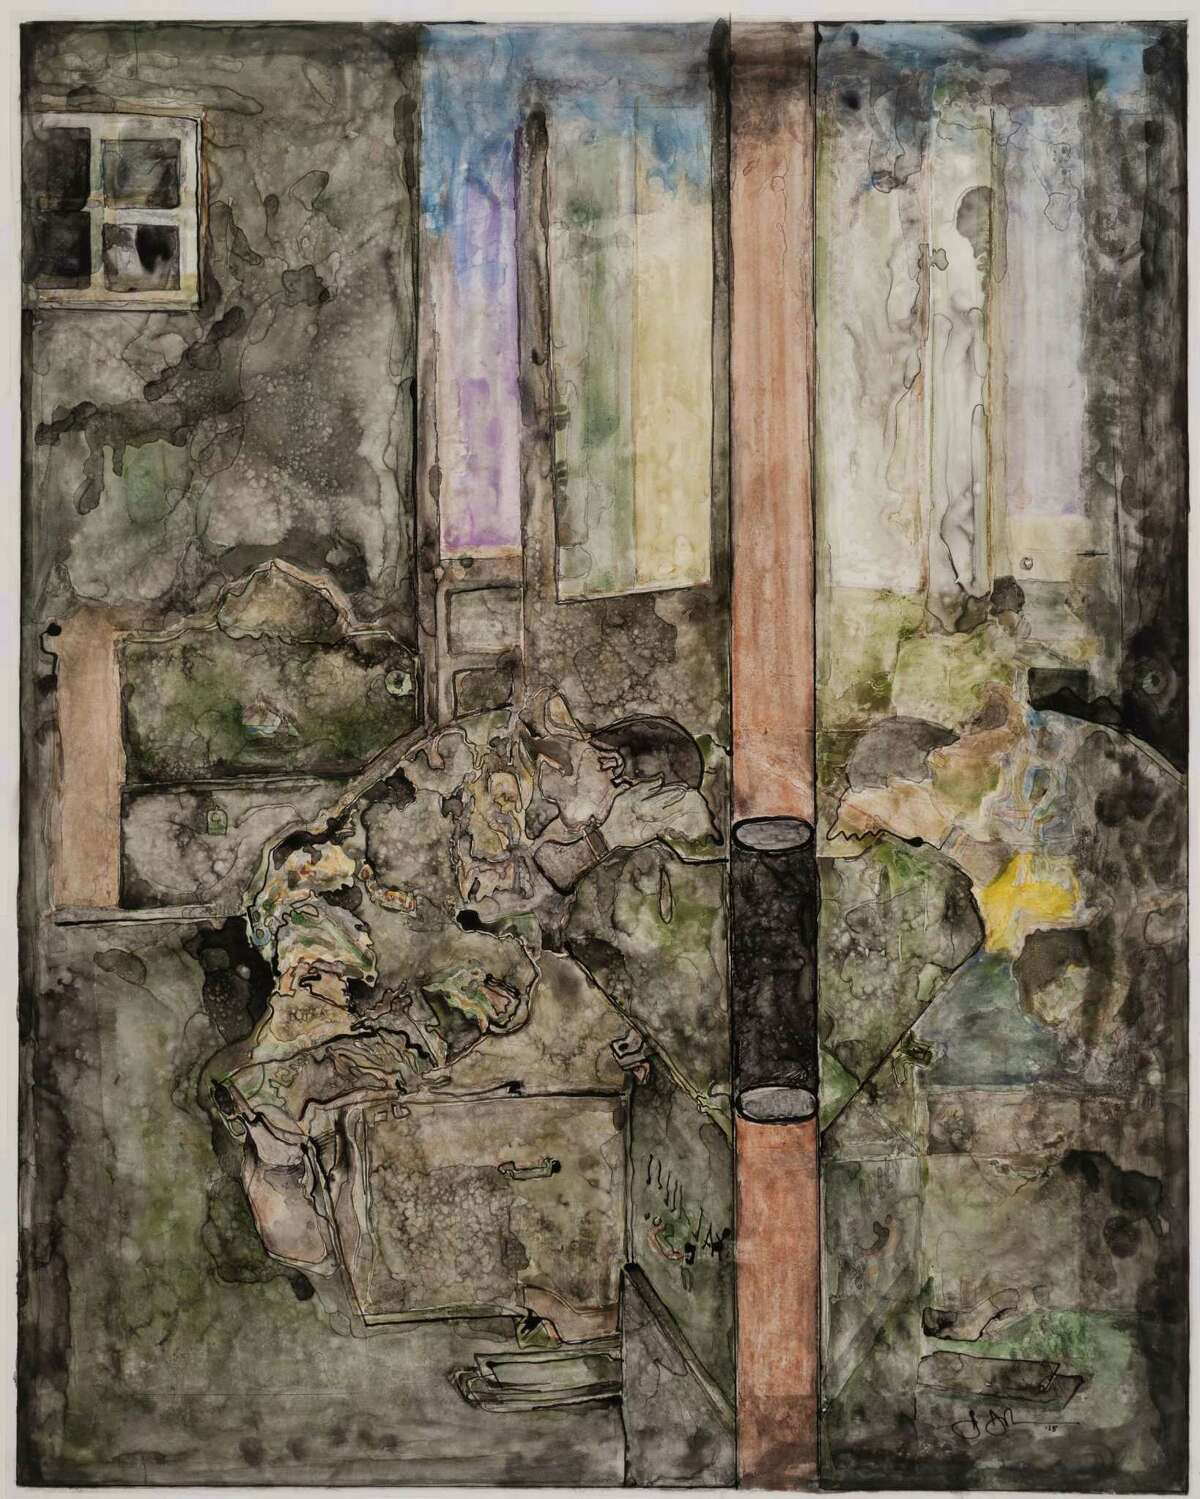 A recurring figure lifted from a Life magazine image of demoralized Vietnam War soldier John Farley that appears in many works by Jasper Johns is barely visible in this untitled ink and watercolor drawing on plastic, from 2015.